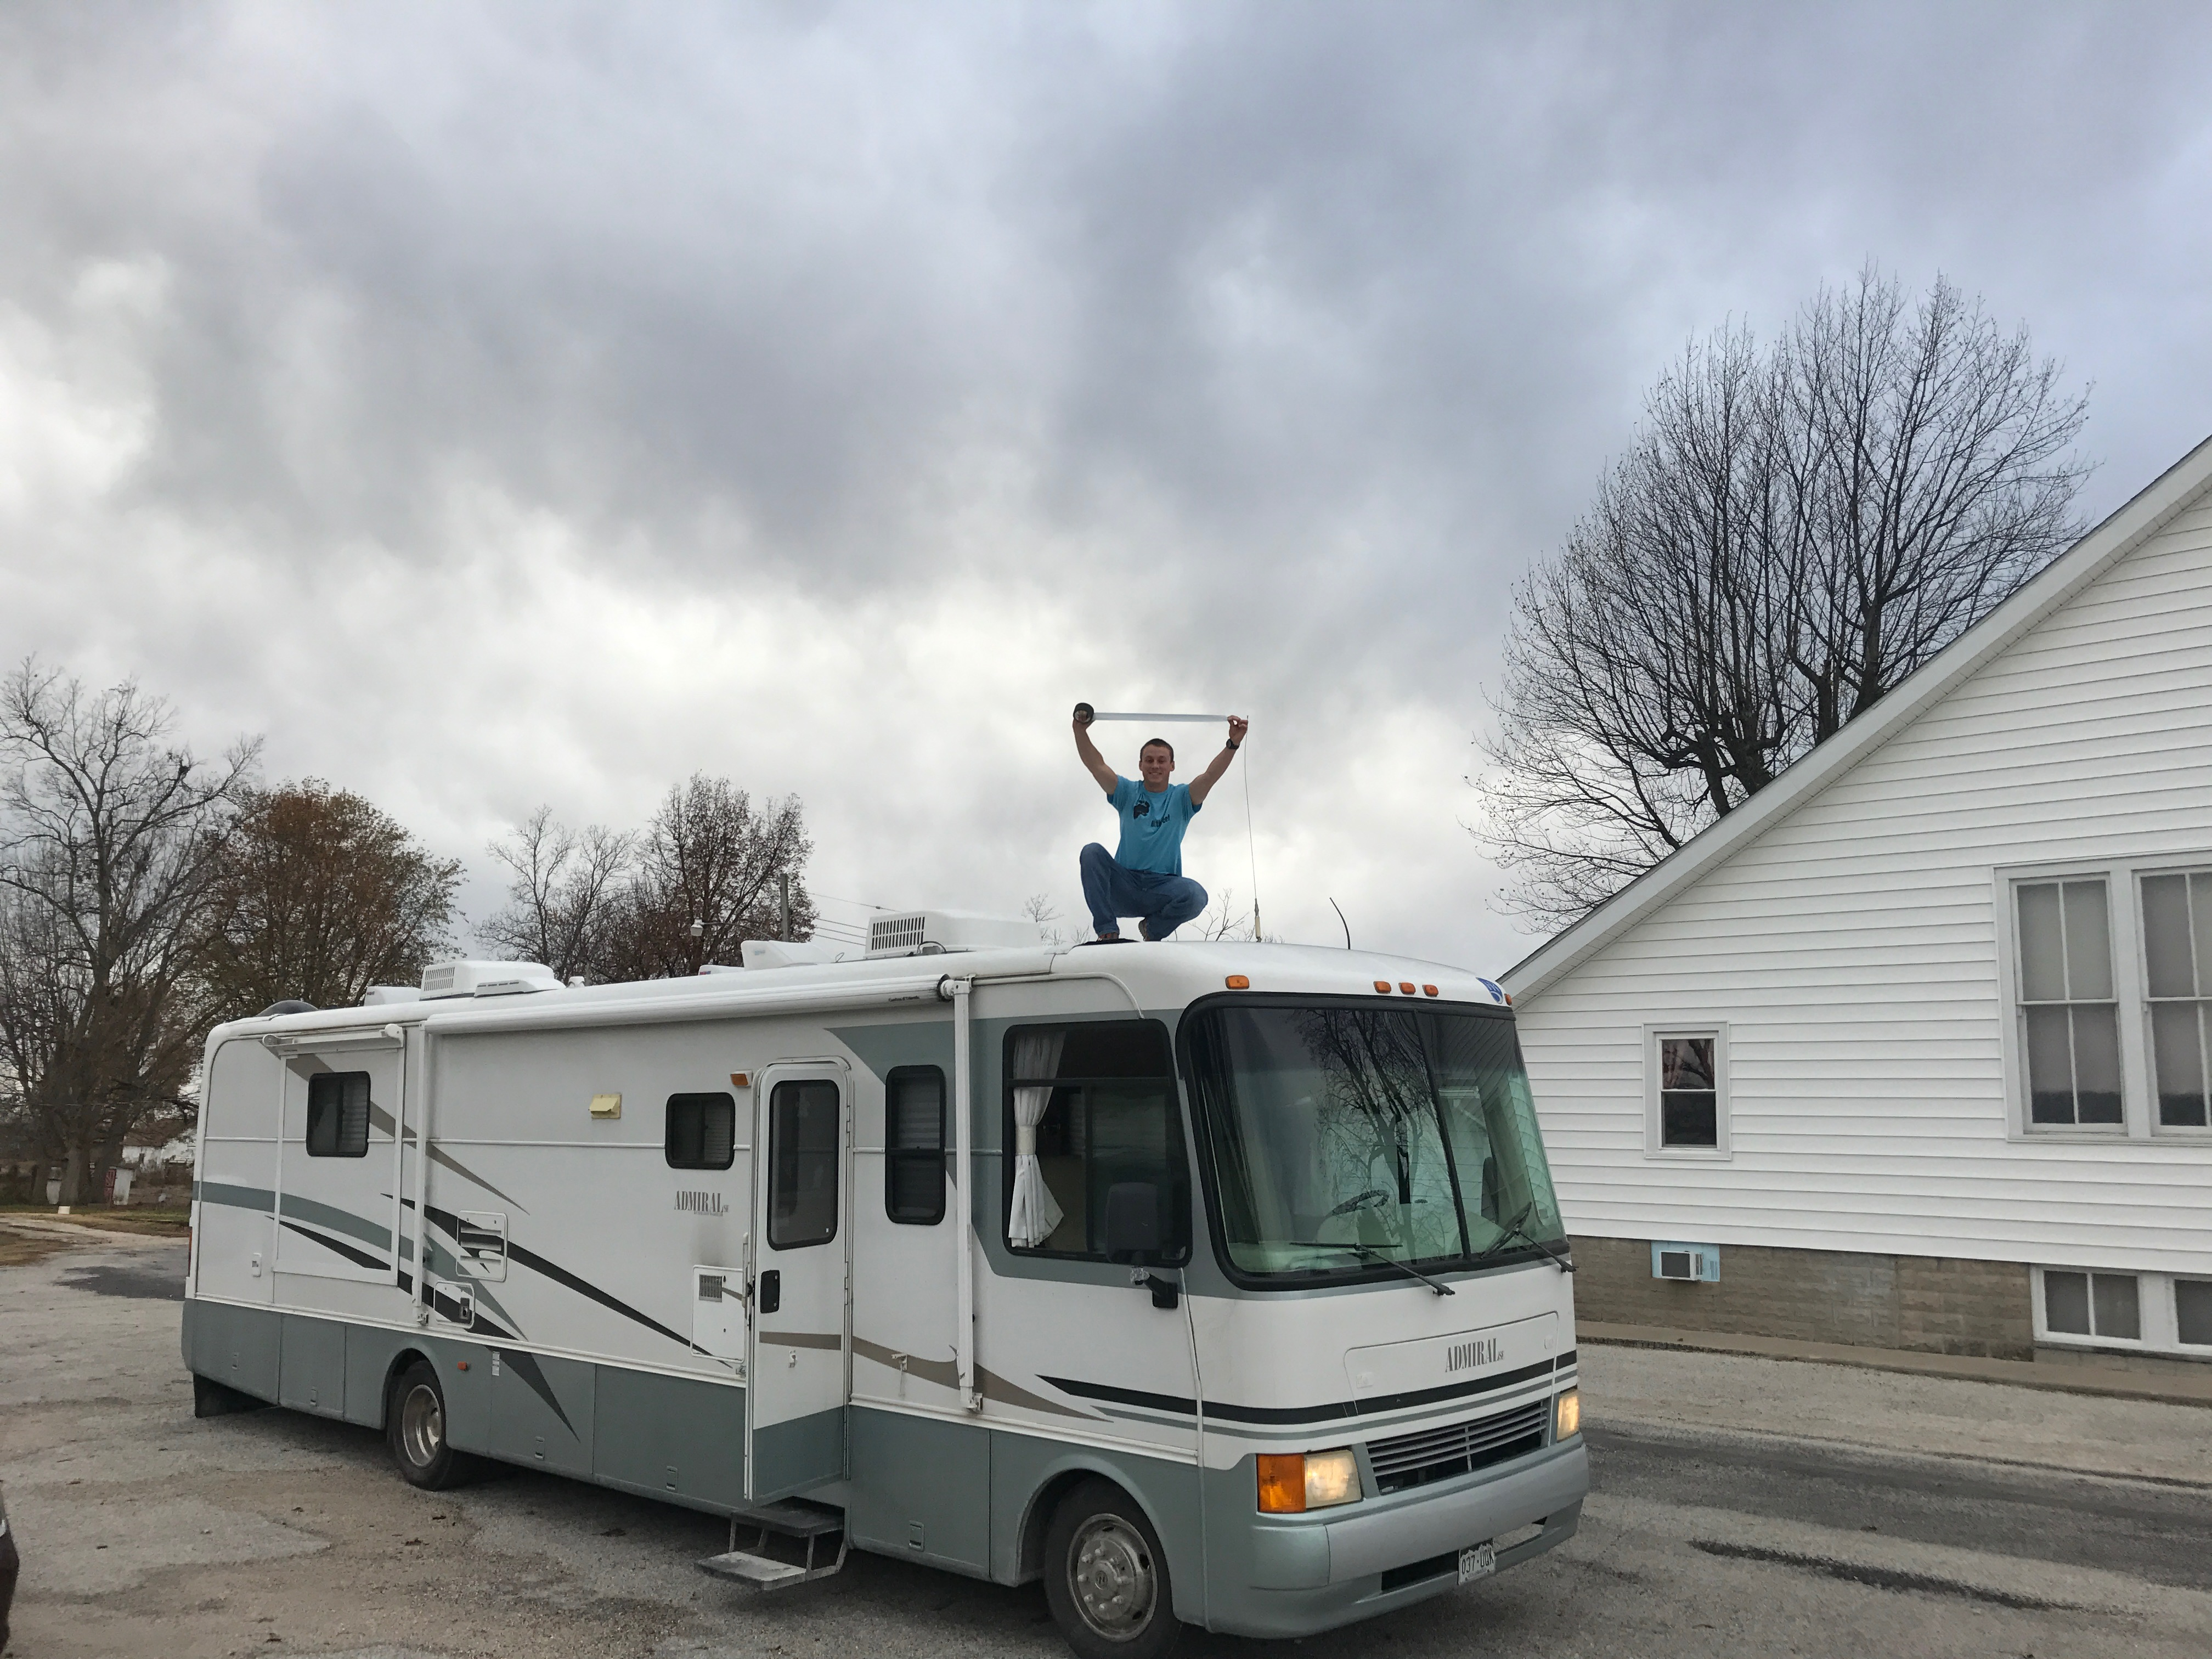 once-again-uncle-sam-doing-the-oddest-fix-it-jobs-this-time-gafer-taping-the-top-of-the-rv-before-a-long-drive_31291827822_o